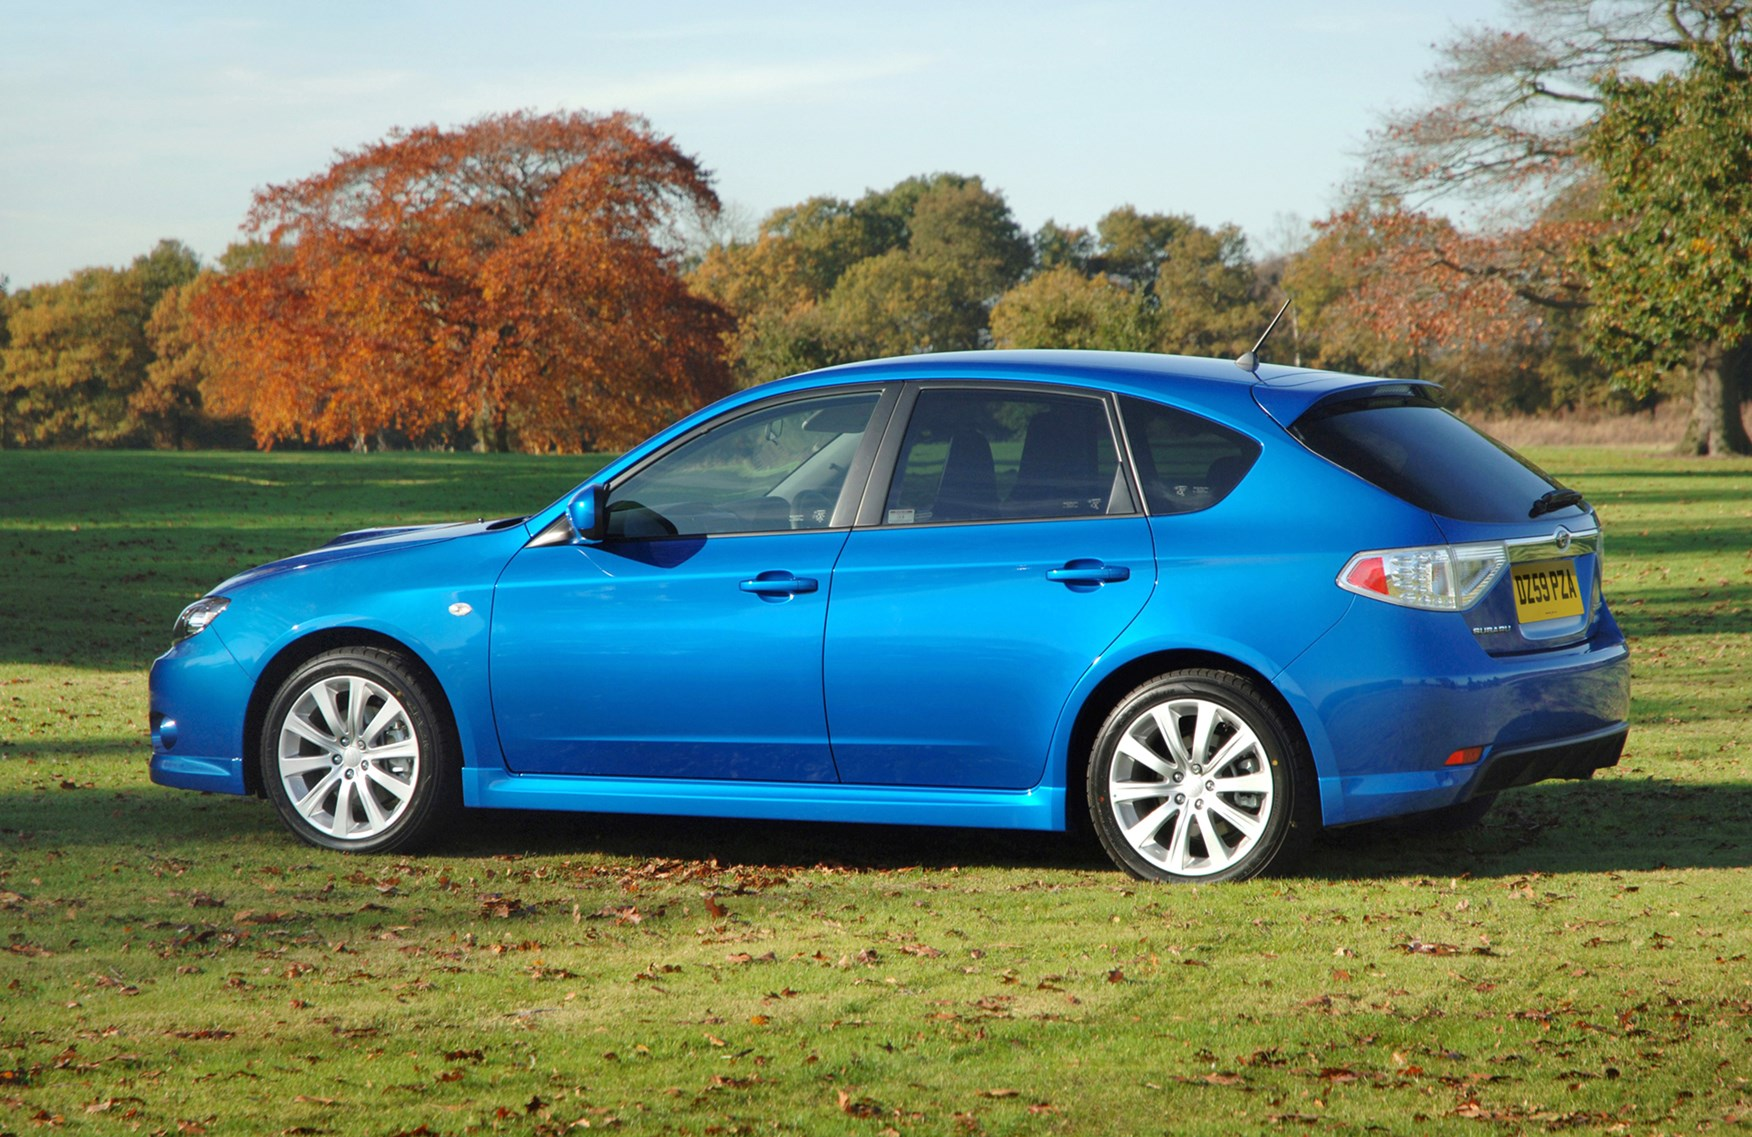 subaru impreza hatchback review 2007 2012 parkers. Black Bedroom Furniture Sets. Home Design Ideas